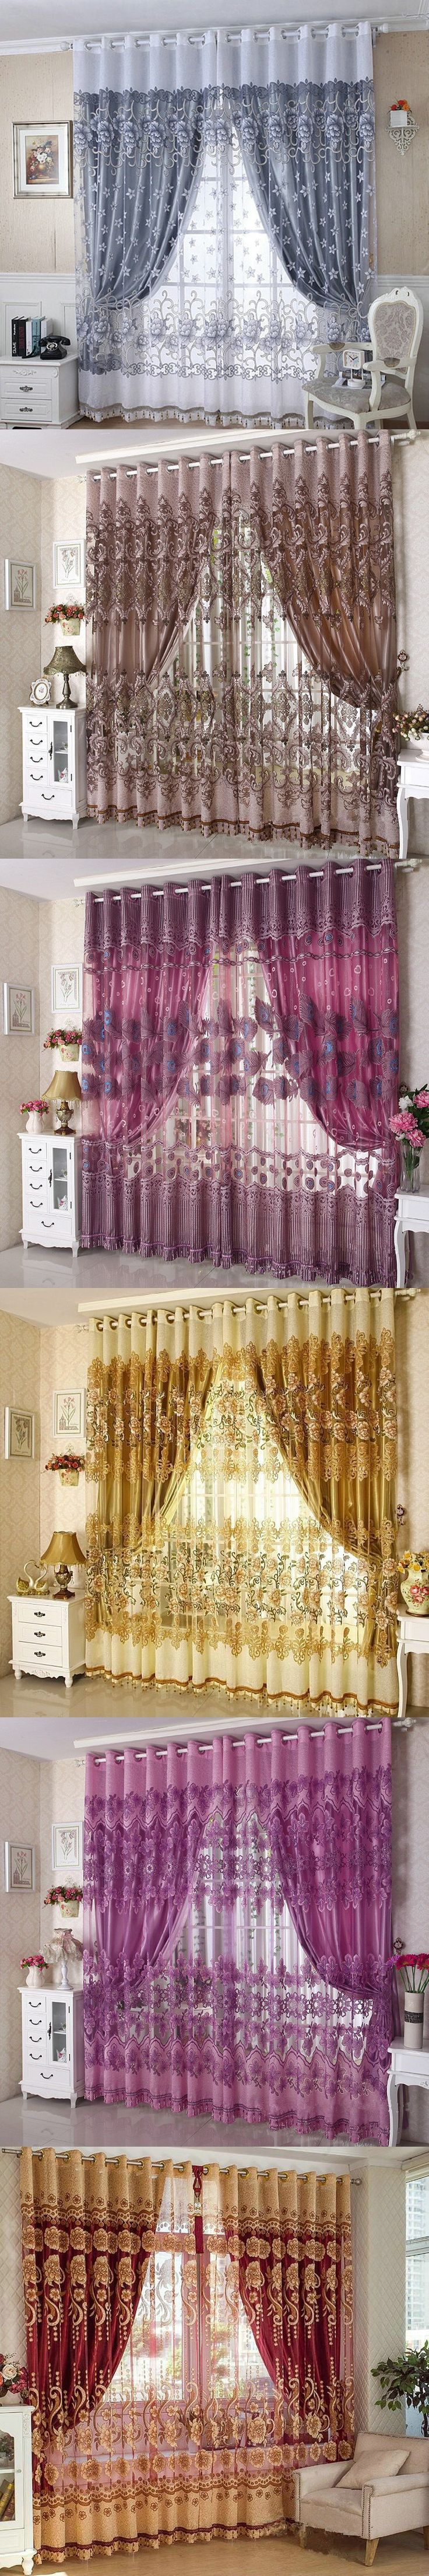 2015 New Arrival Ready Made Luxury Curtains For Living Room/Bedroom Tulle+ Thick Curtains Purple/Brown Free Shipping $107.8